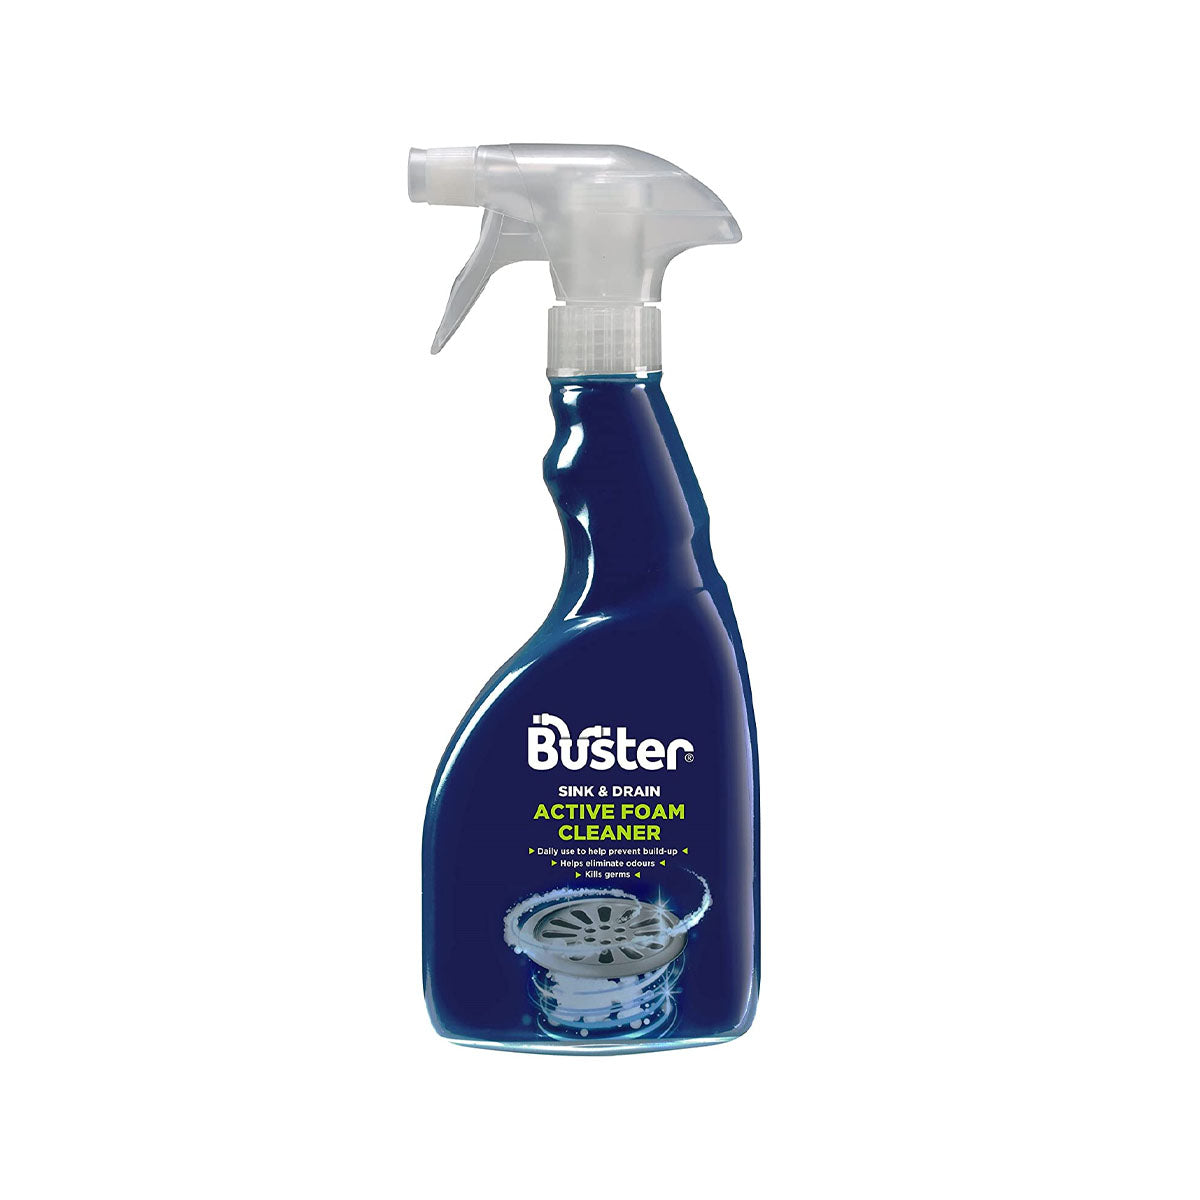 Buster Sink & Drain Active Foam Cleaner (500ml)